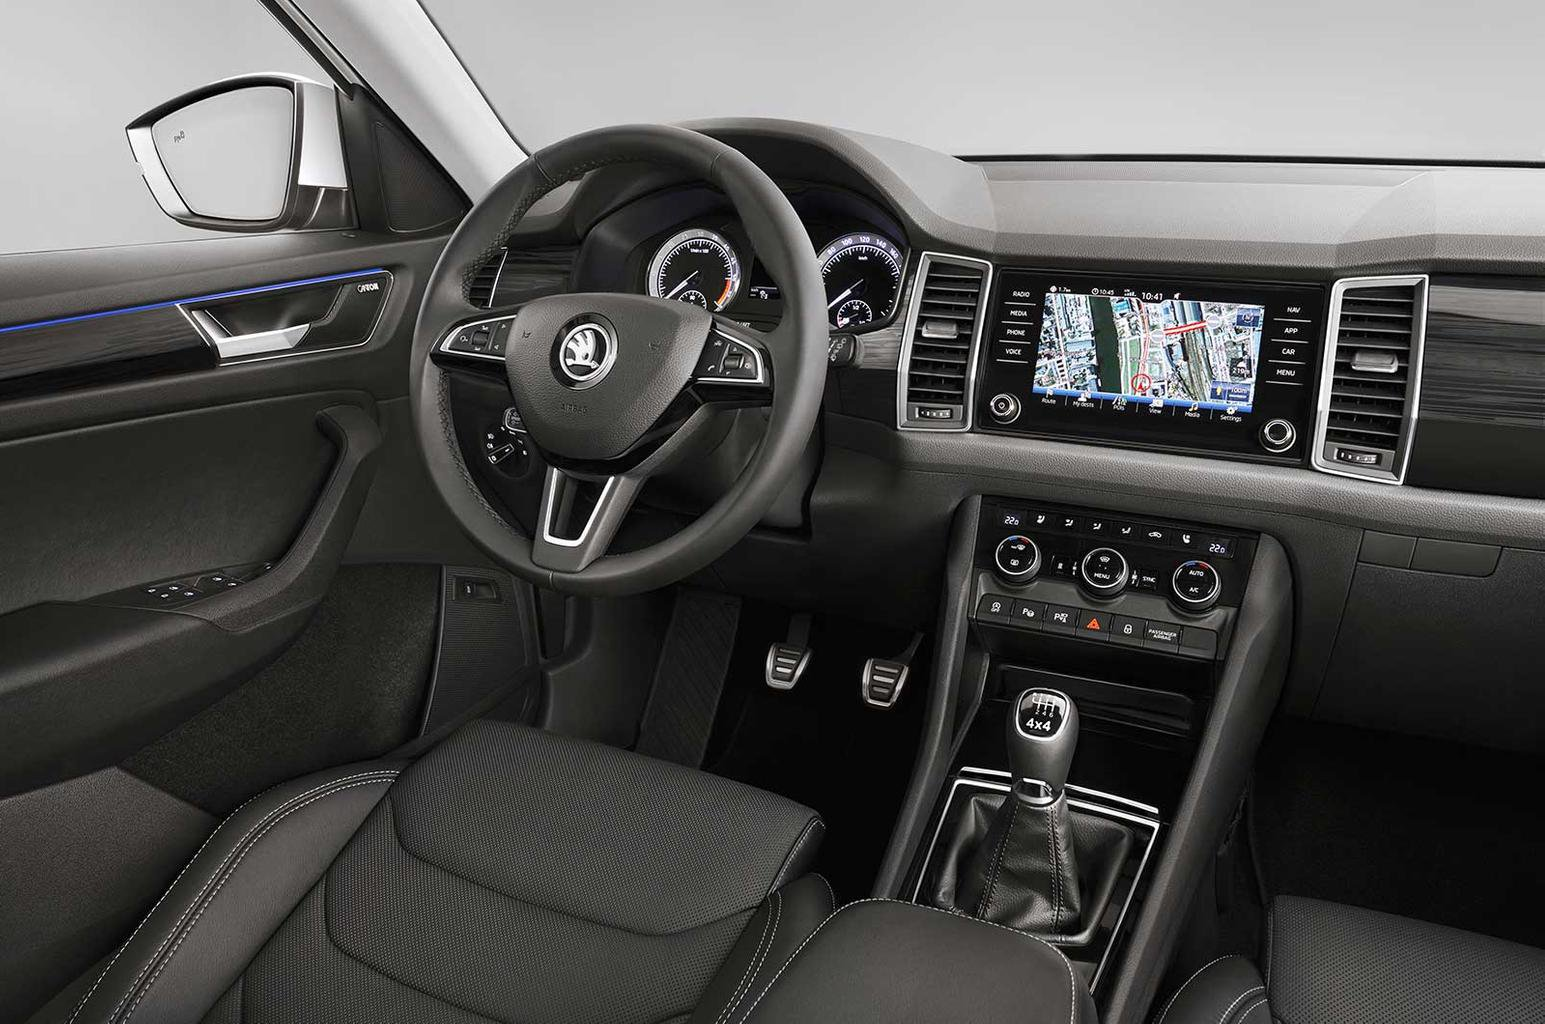 New Skoda Kodiaq - first interior pictures revealed